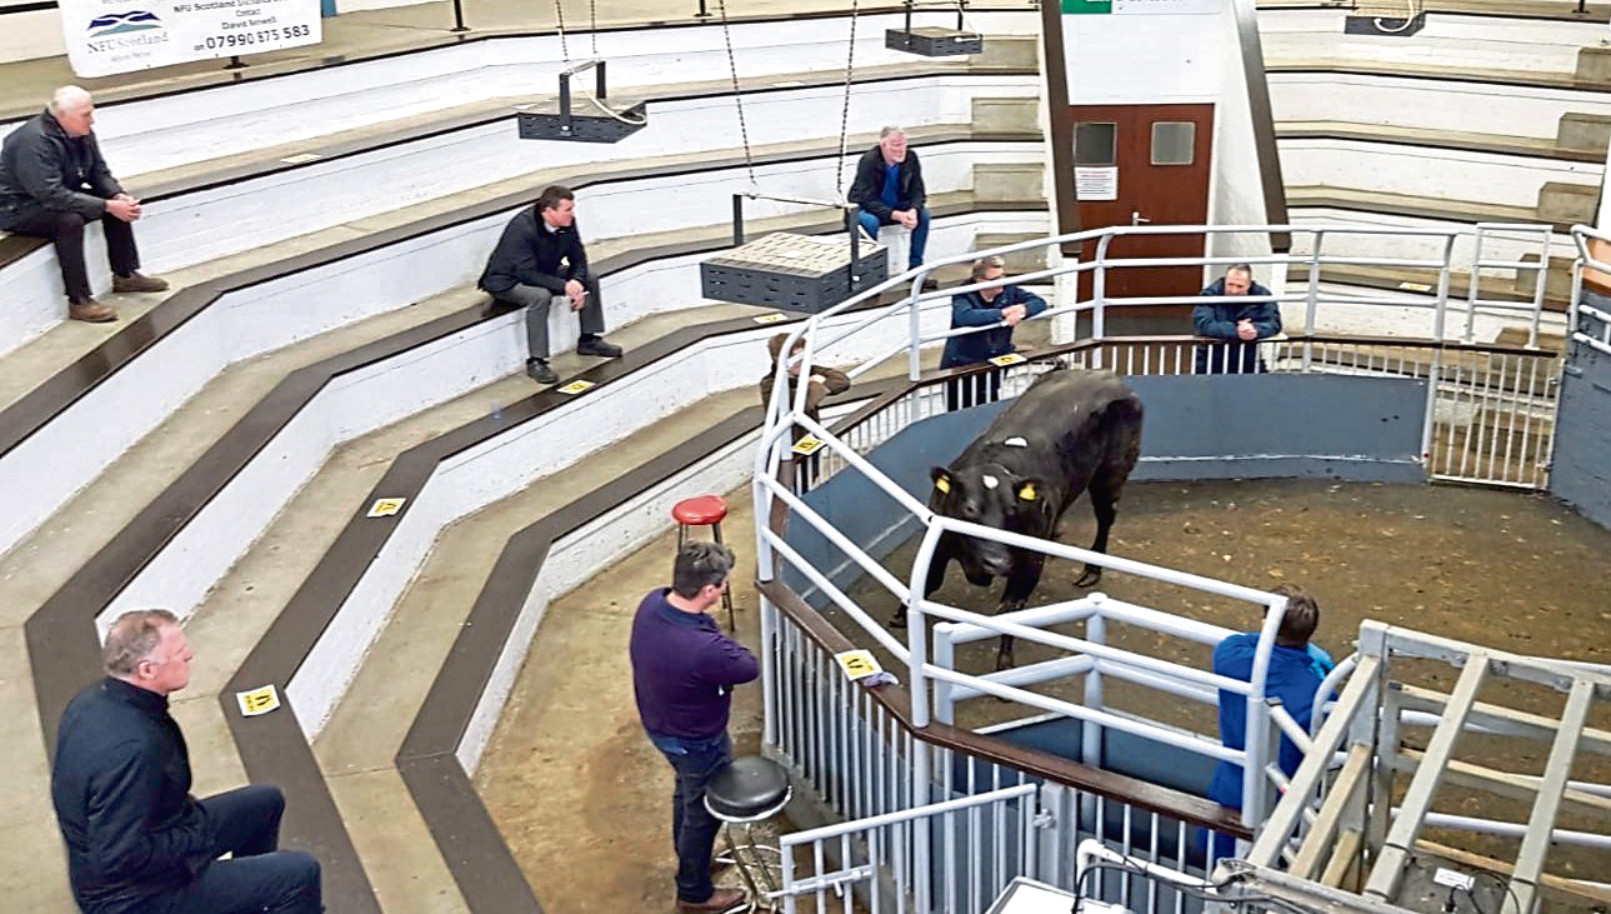 Livestock marts introduced strict new guidelines on social distancing.